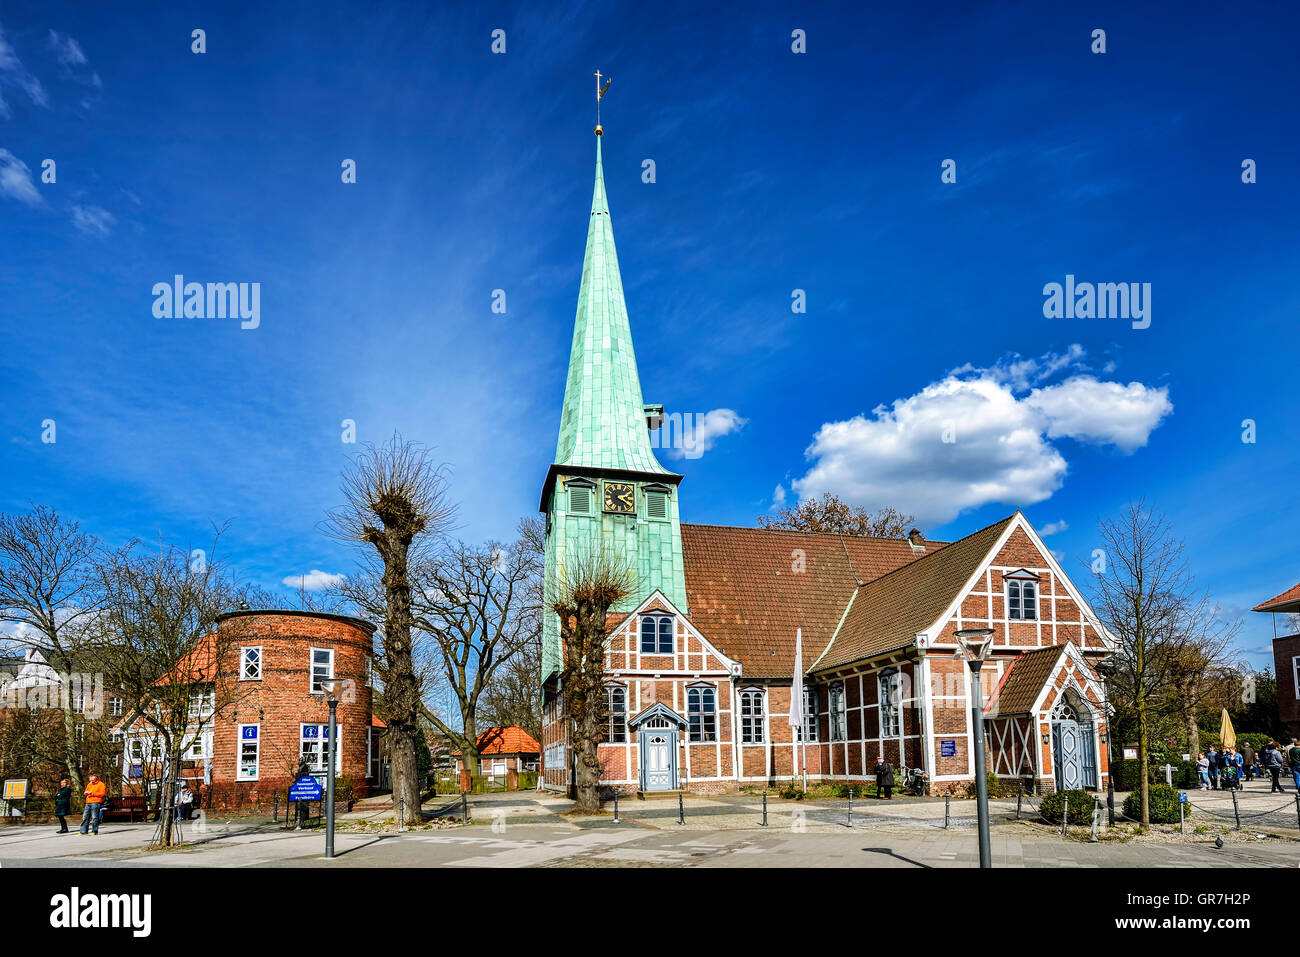 Badewannendoktor Hamburg Bergedorf St Petri Stock Photos St Petri Stock Images Alamy